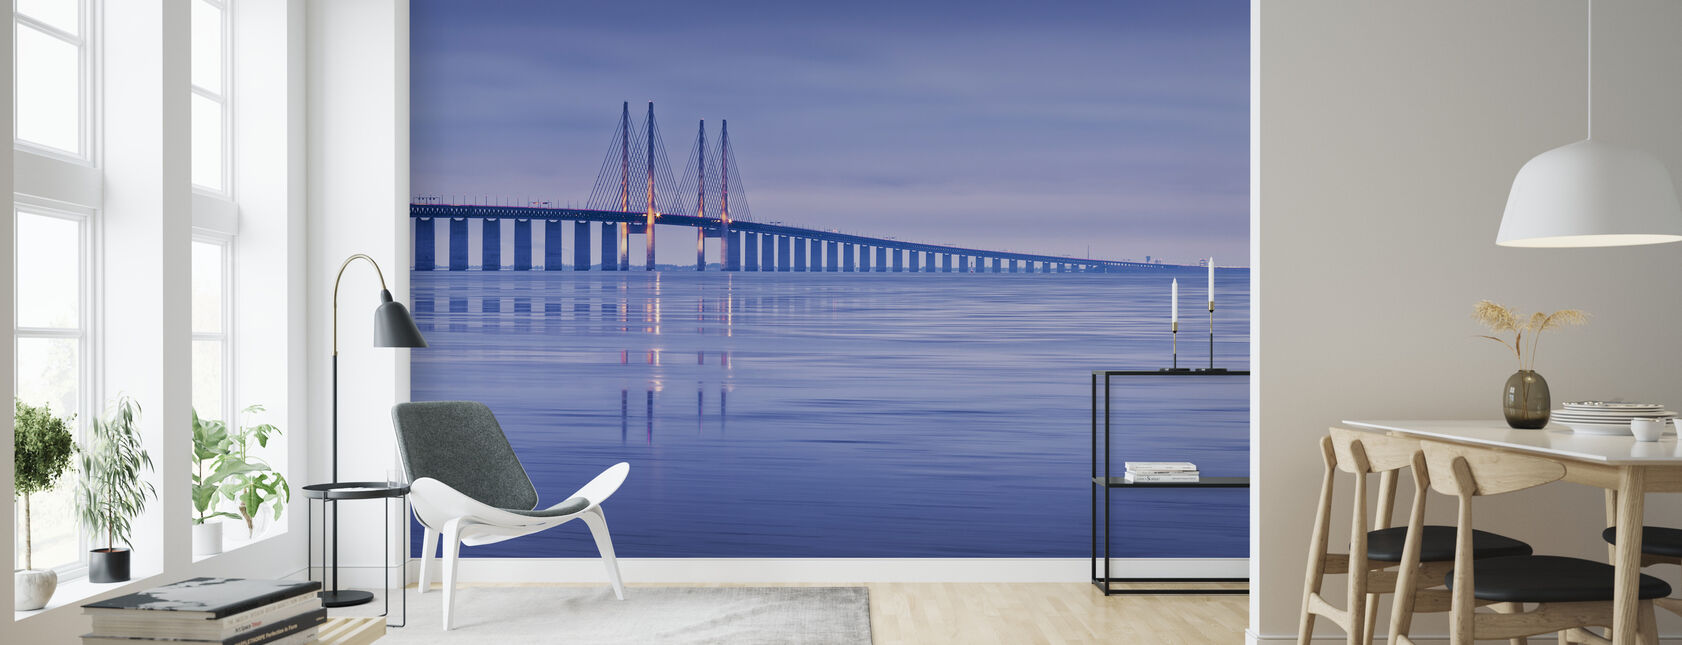 Oresund Bridge - Wallpaper - Living Room